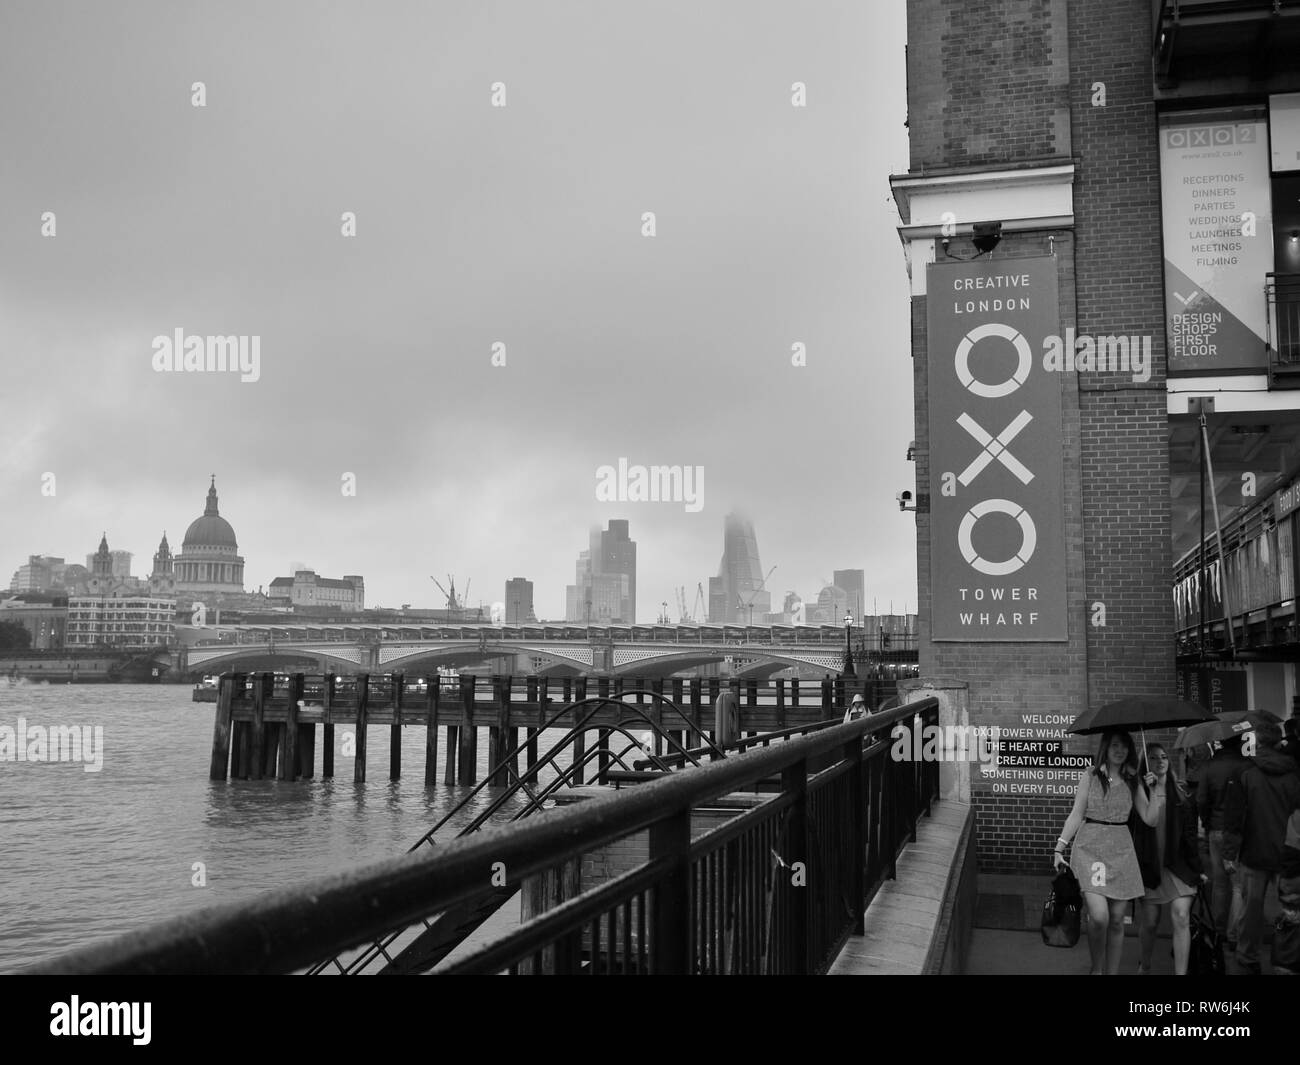 B&W image of two ladies dressed for a night out in London, passing the OXO Tower on the South Bank of the Thames, holding umbrellas against the rain. - Stock Image